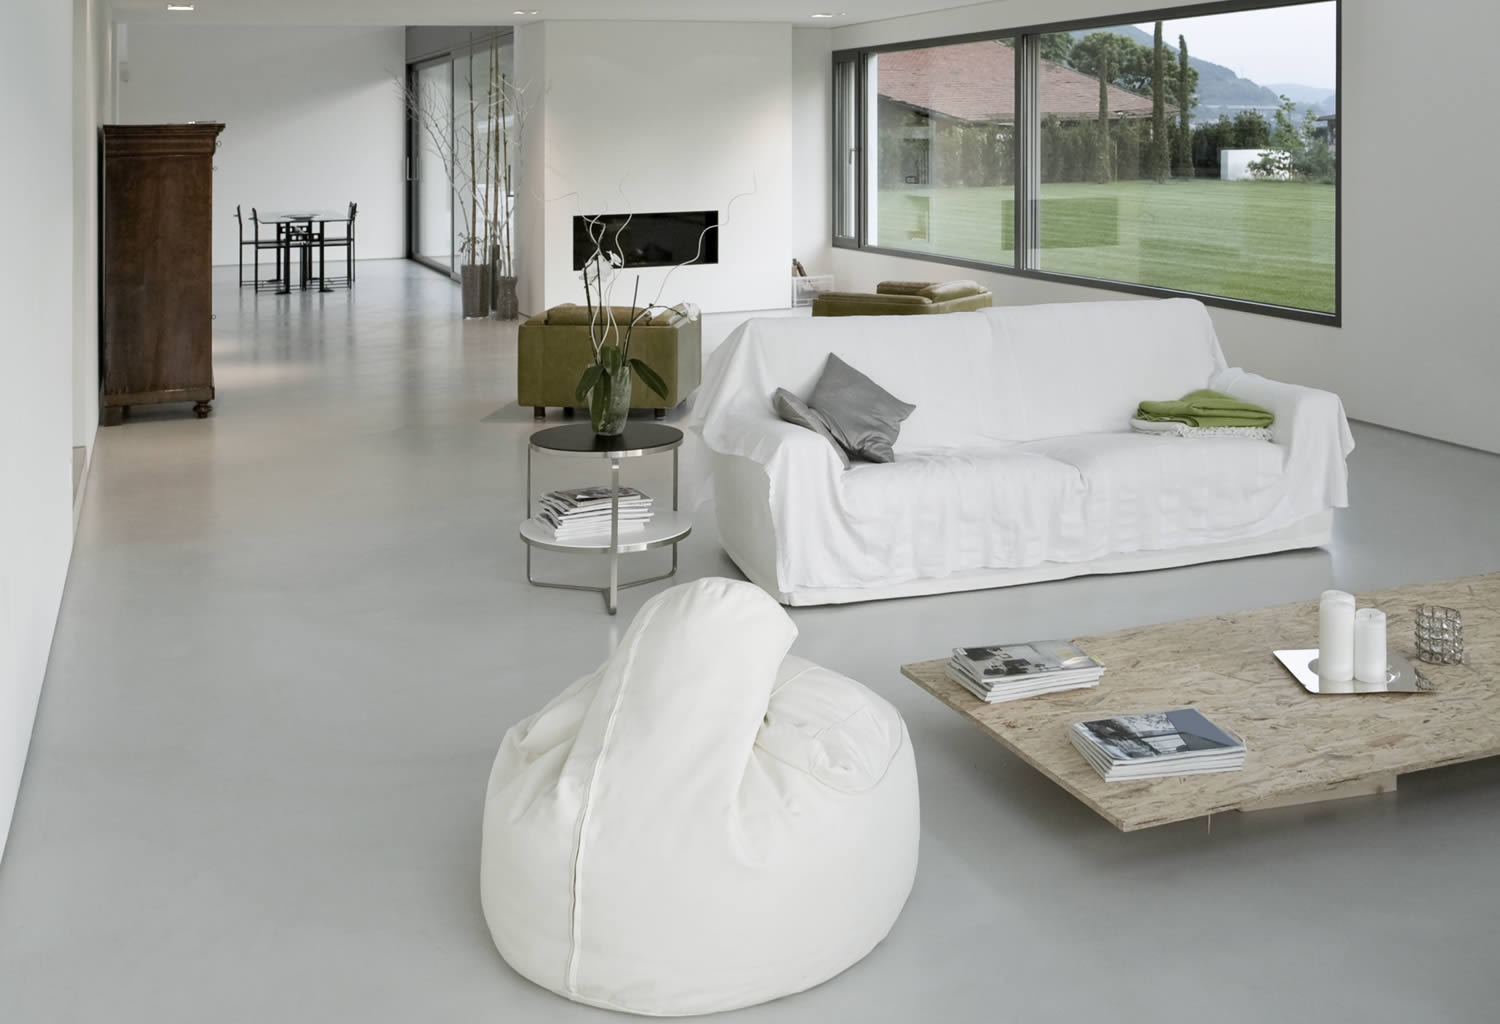 Private home white concrete floors